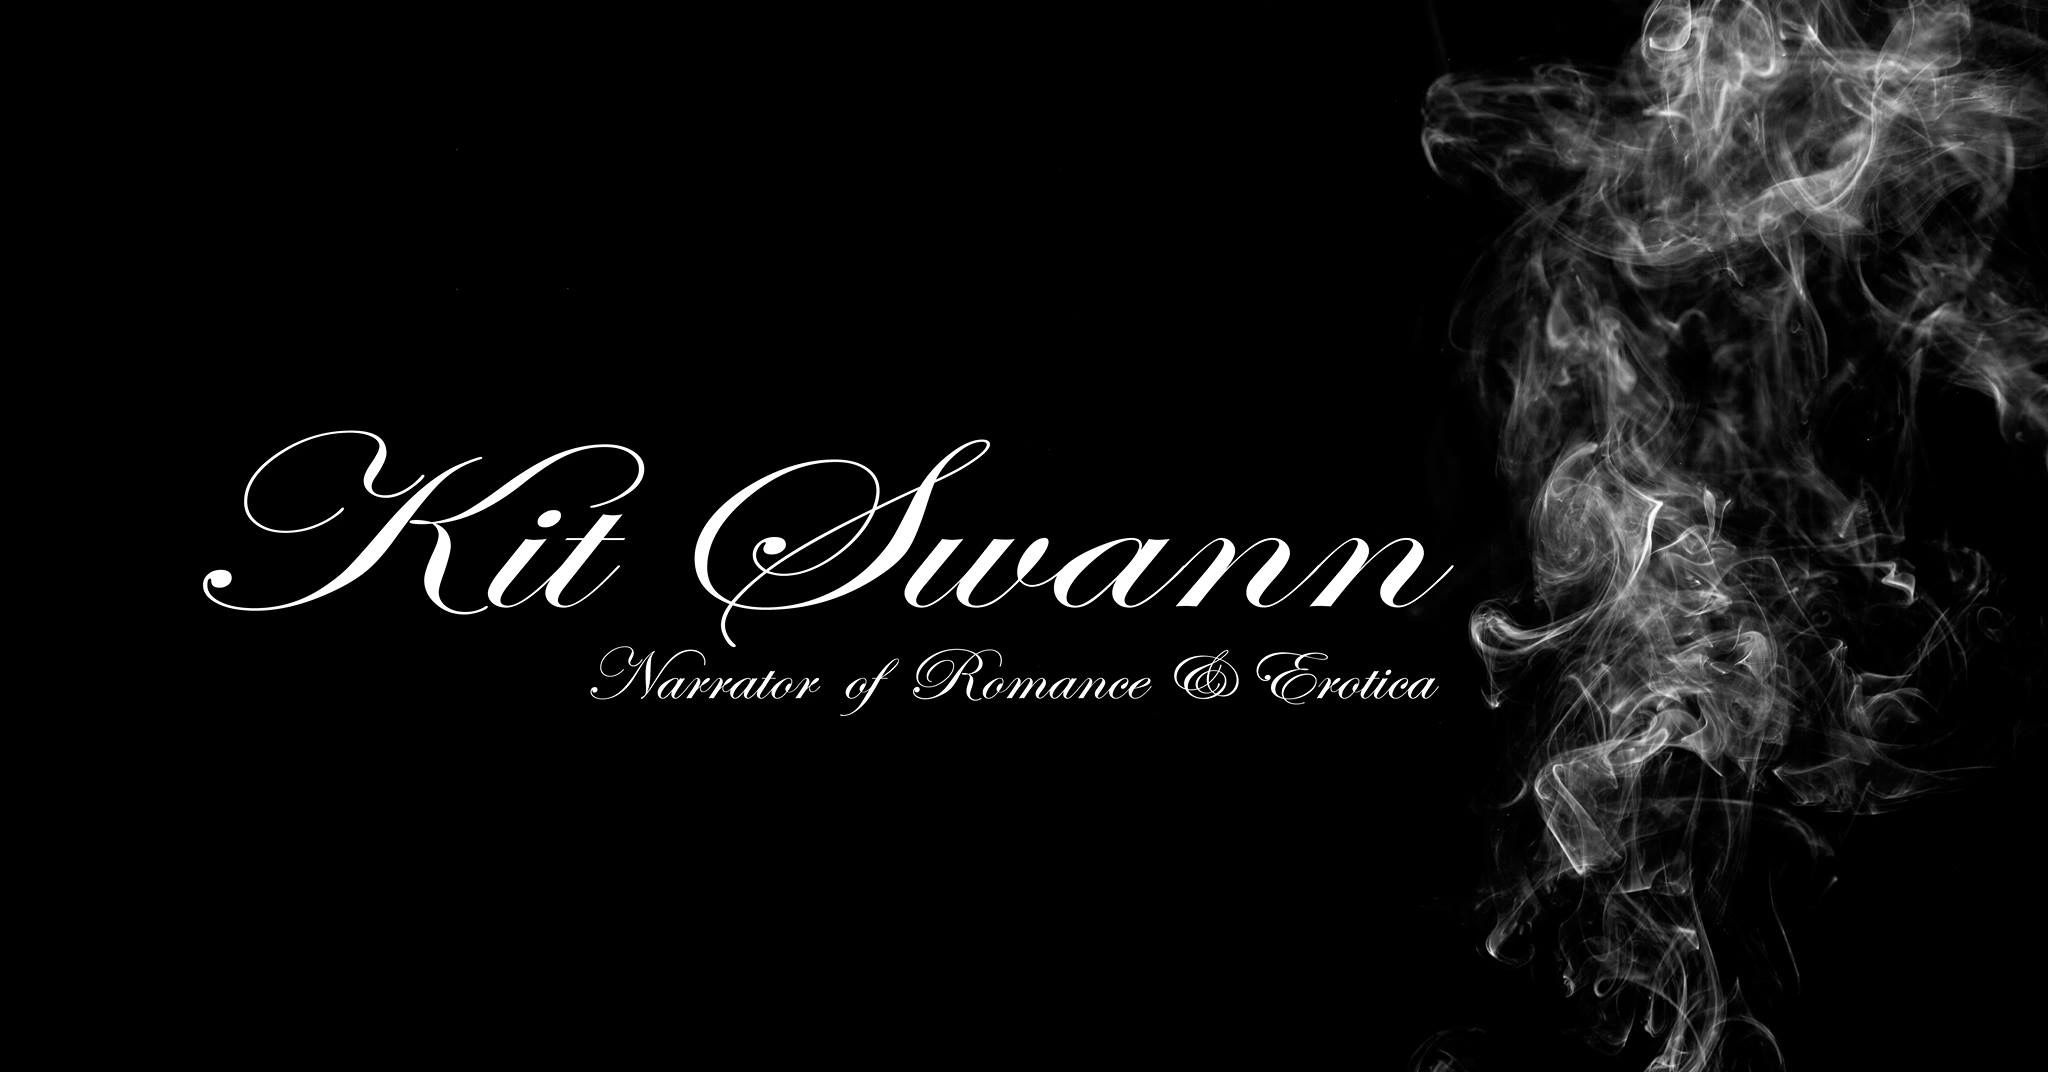 Kit Swann logo - Narrator of Romance and Erotica